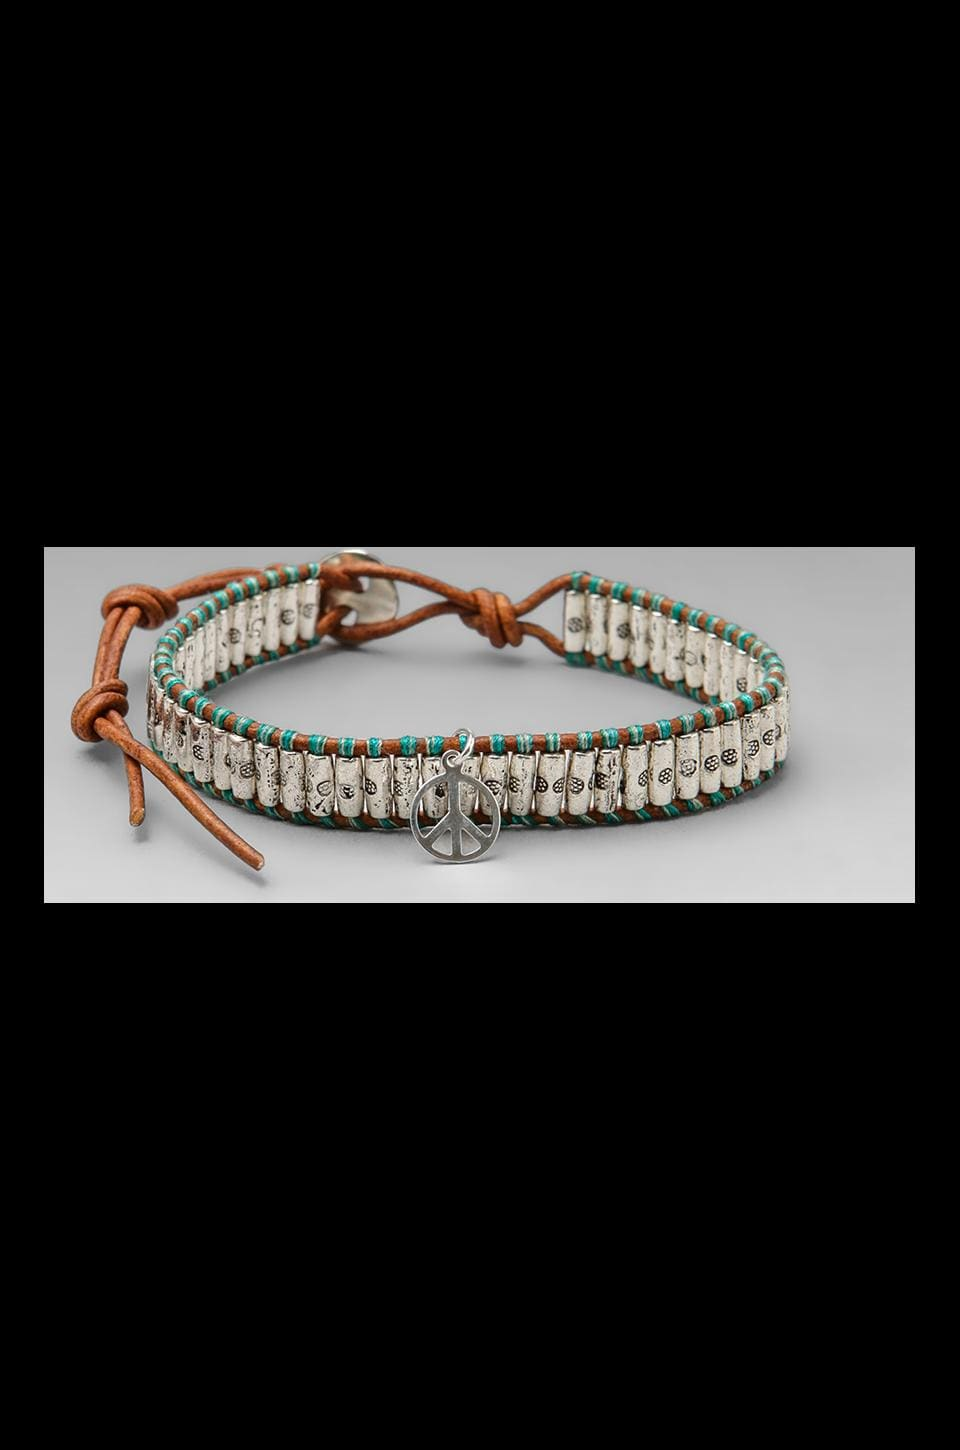 CHAN LUU Peace Bracelet in Turquoise Mix/Natural Brown